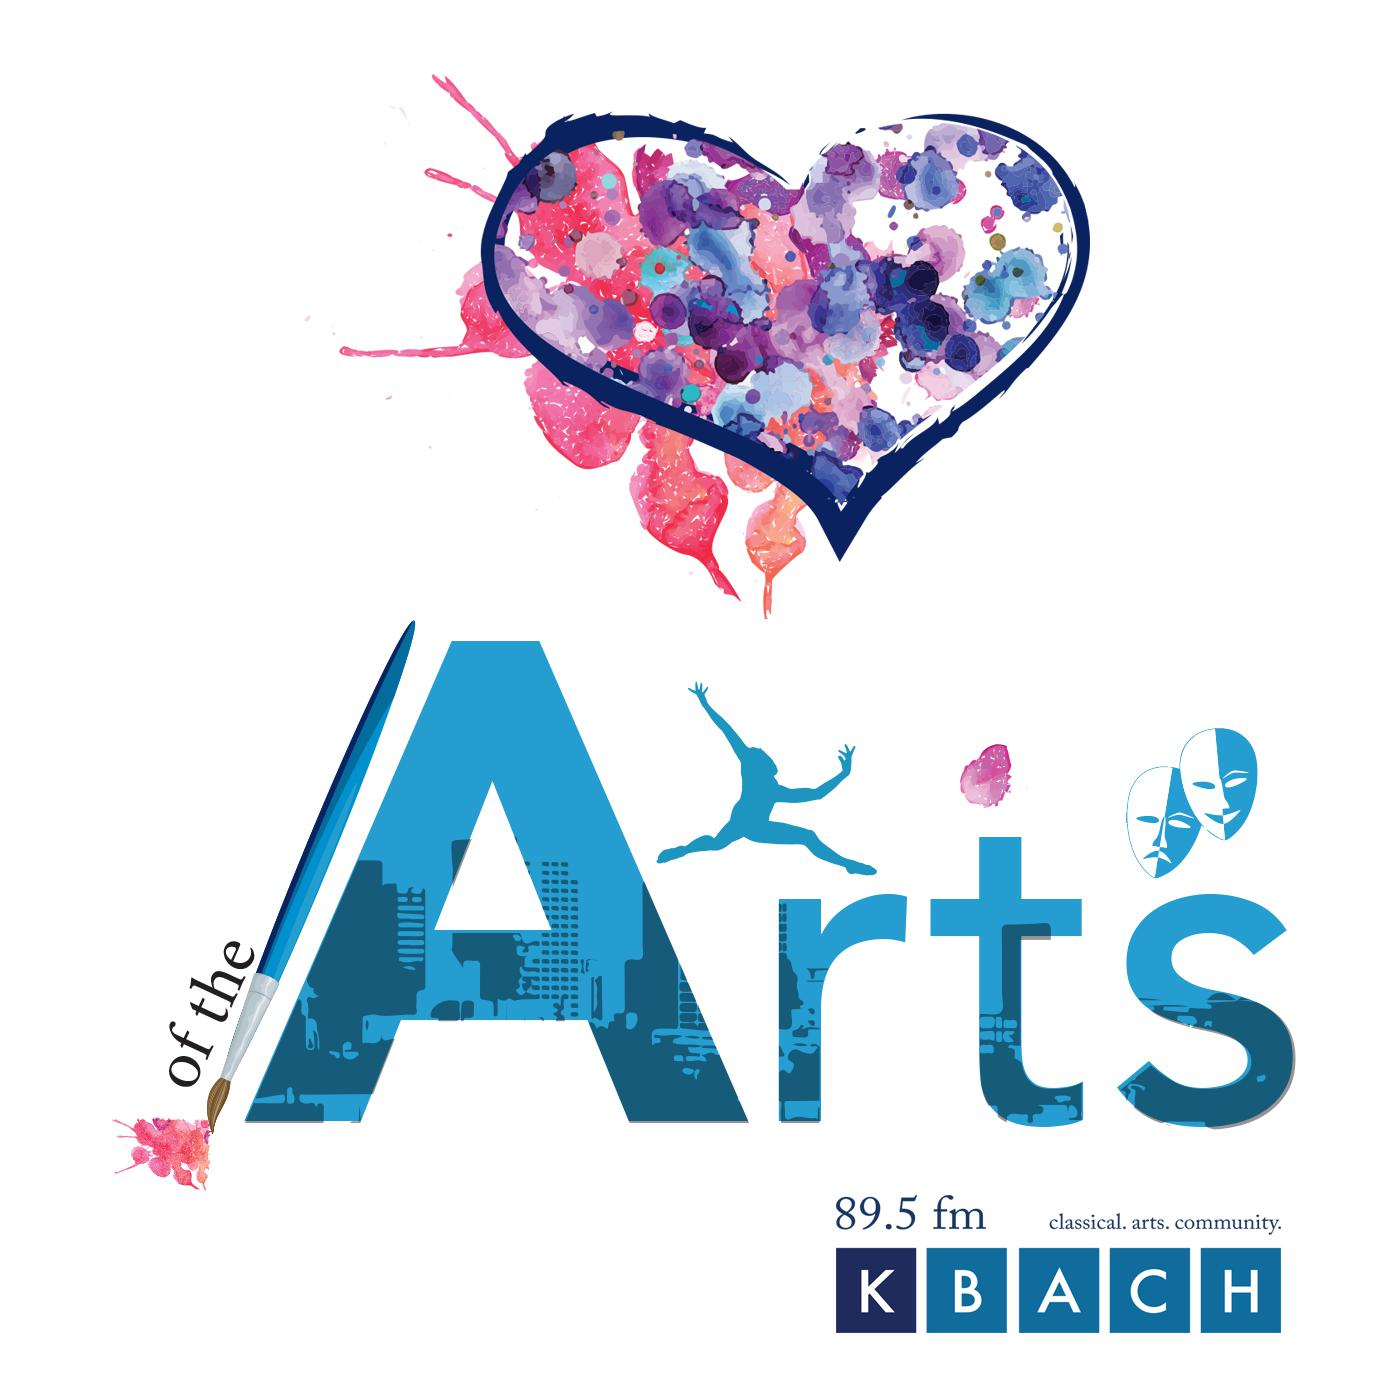 K-BACH's Heart of the Arts (podcast) - K-BACH 89 5FM Phoenix